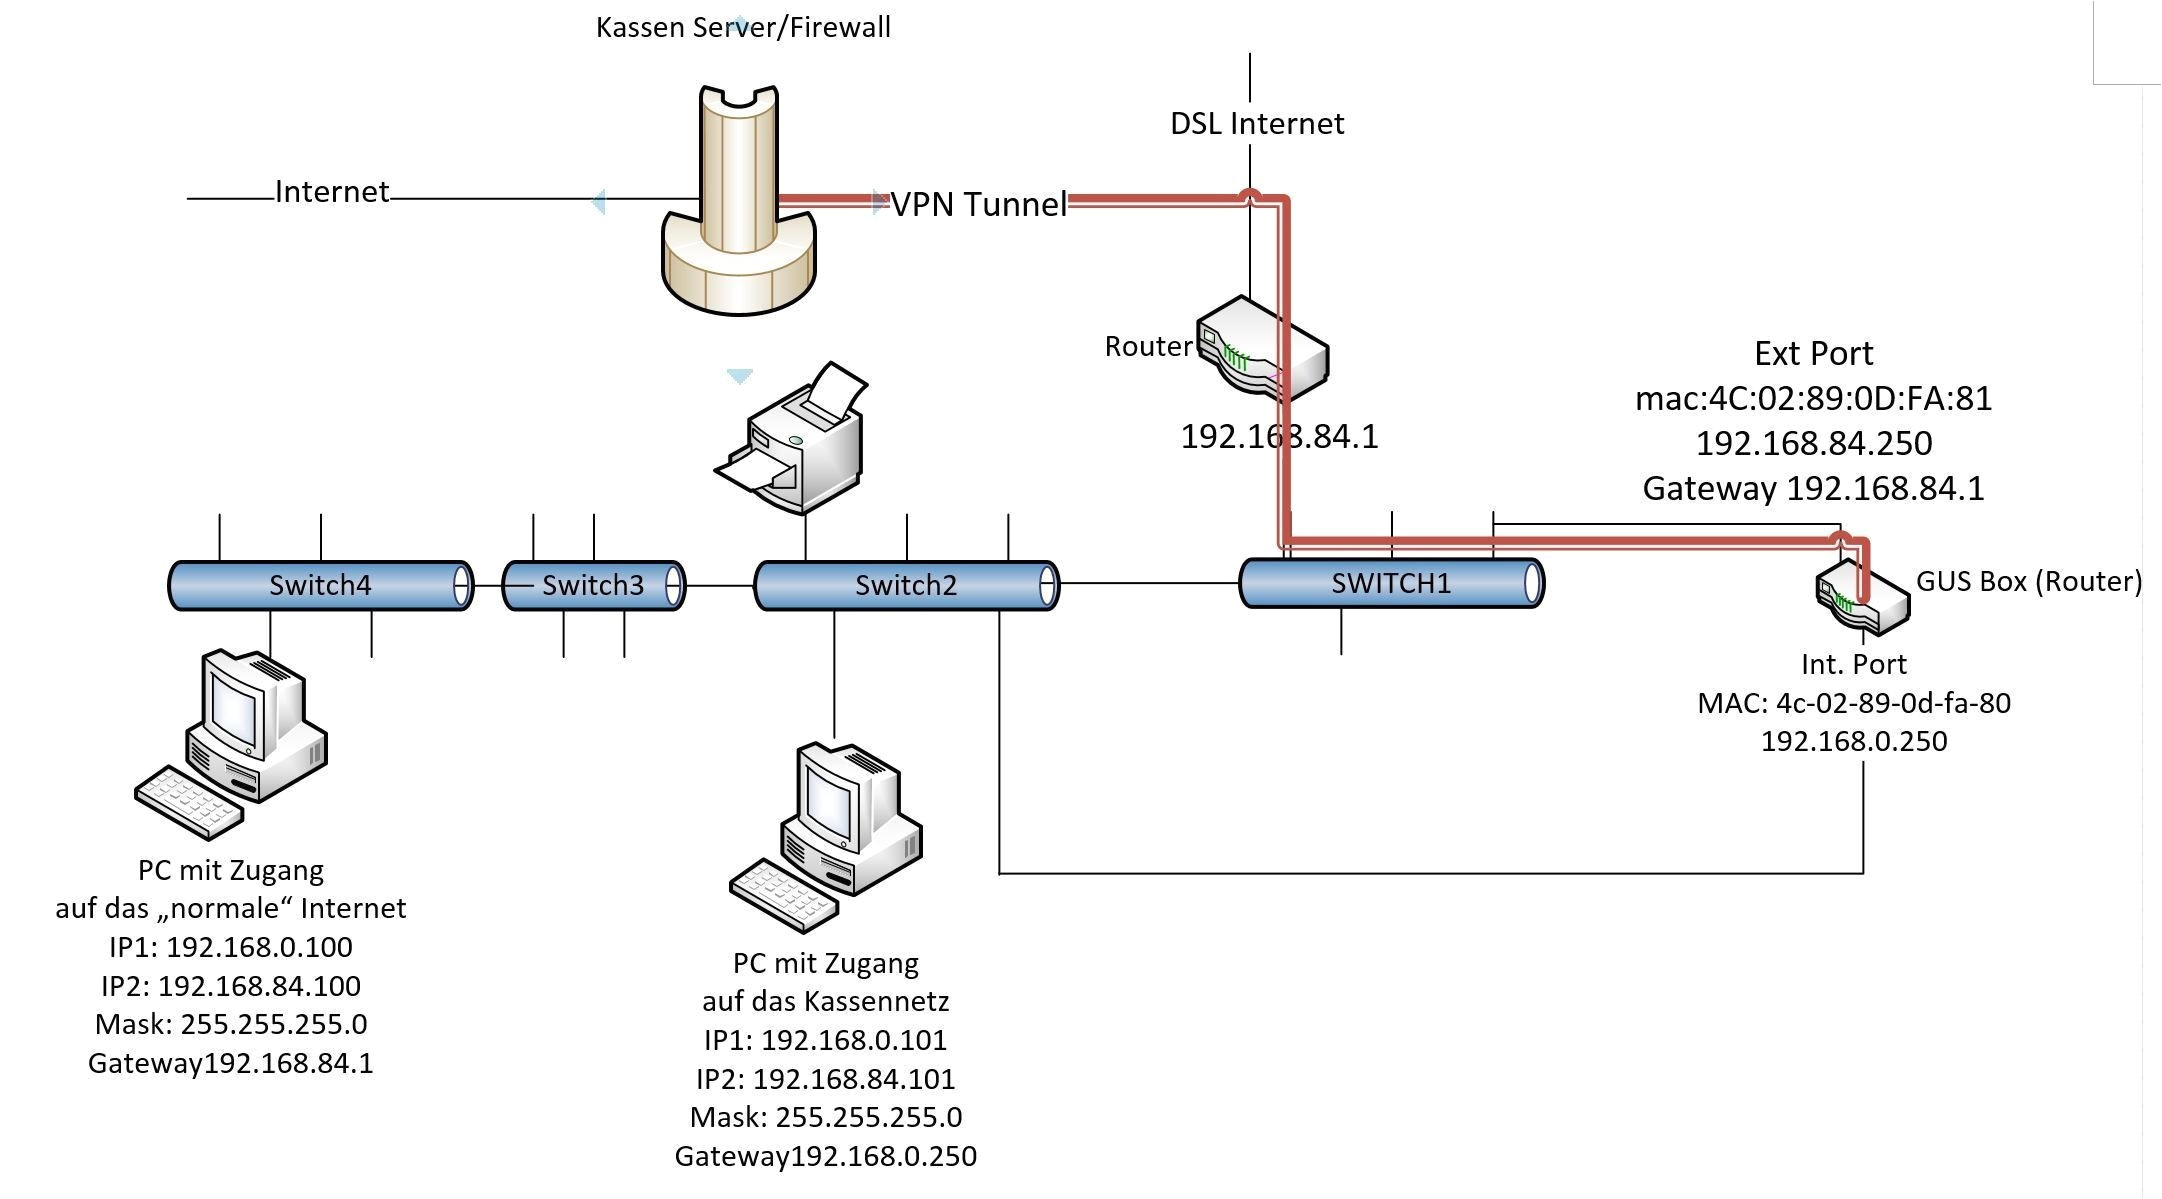 vdsl wiring diagram wiring diagramwiring diagram for dsl inter wiring diagram centreat t dsl work wiring